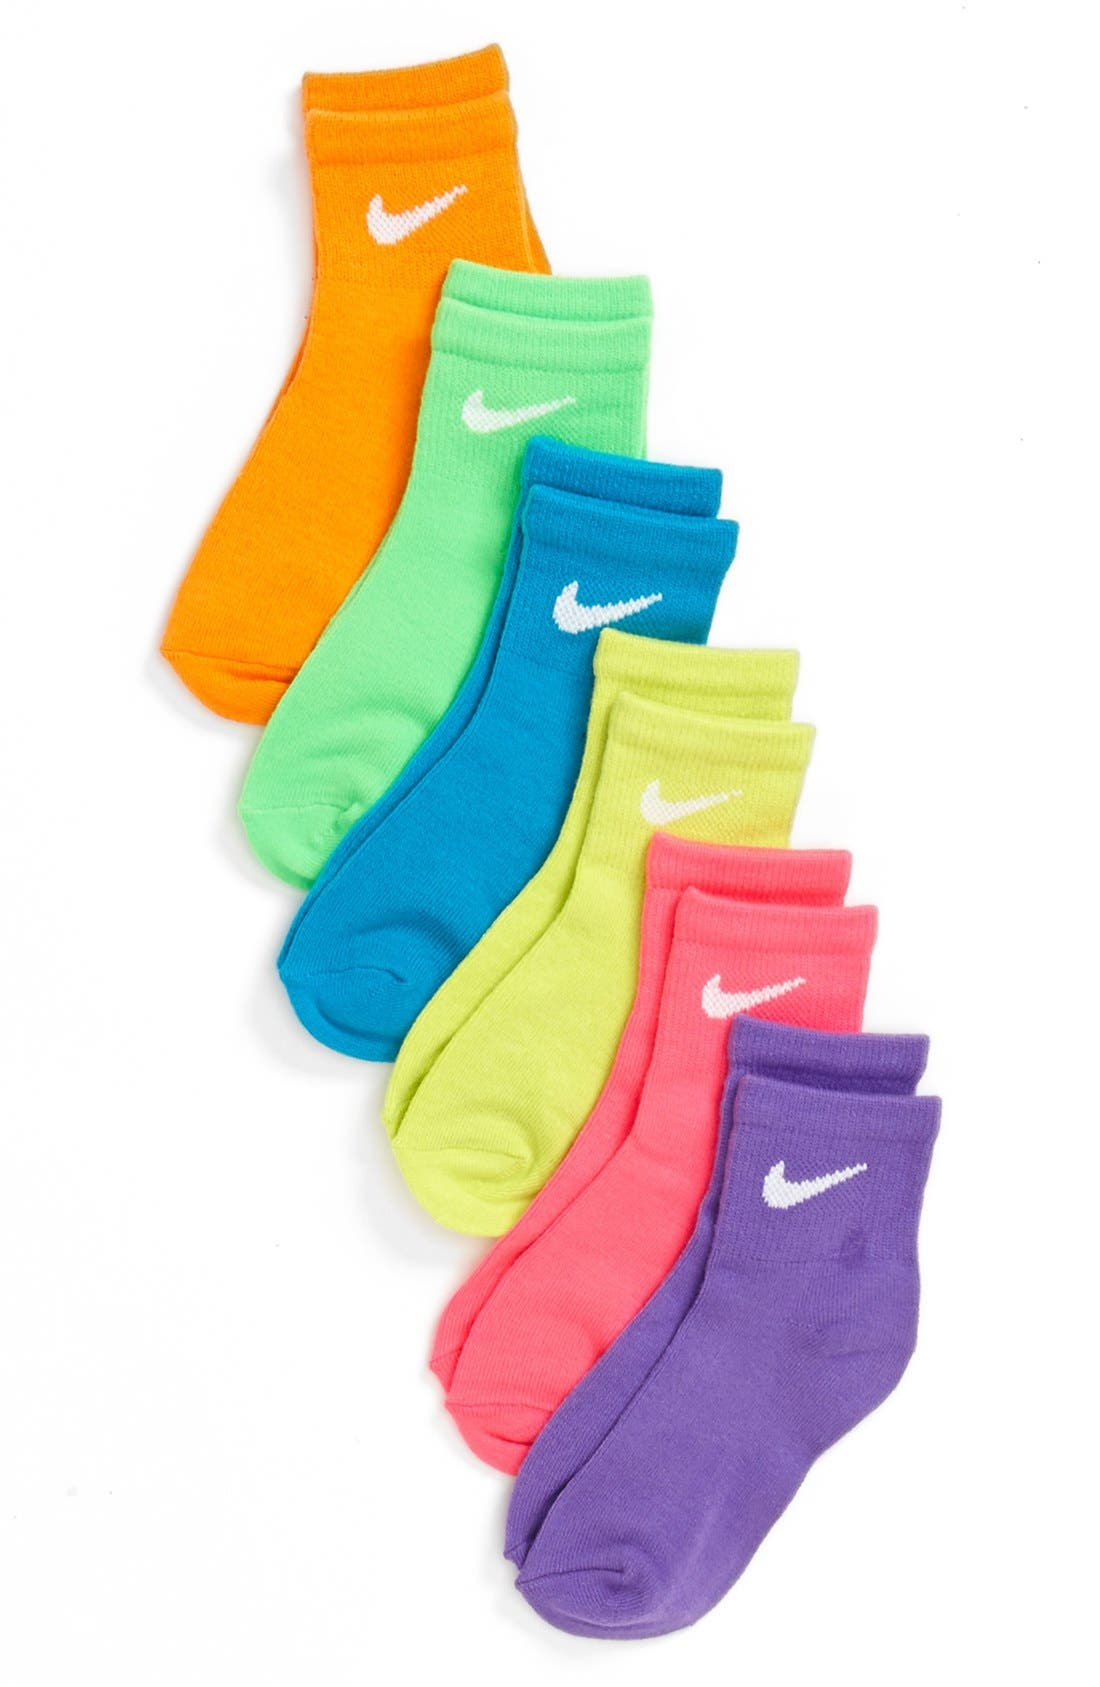 Alternate Image 1 Selected - Nike 'Neon' Low Cut Socks (6-Pack) (Toddler Girls & Little Girls)